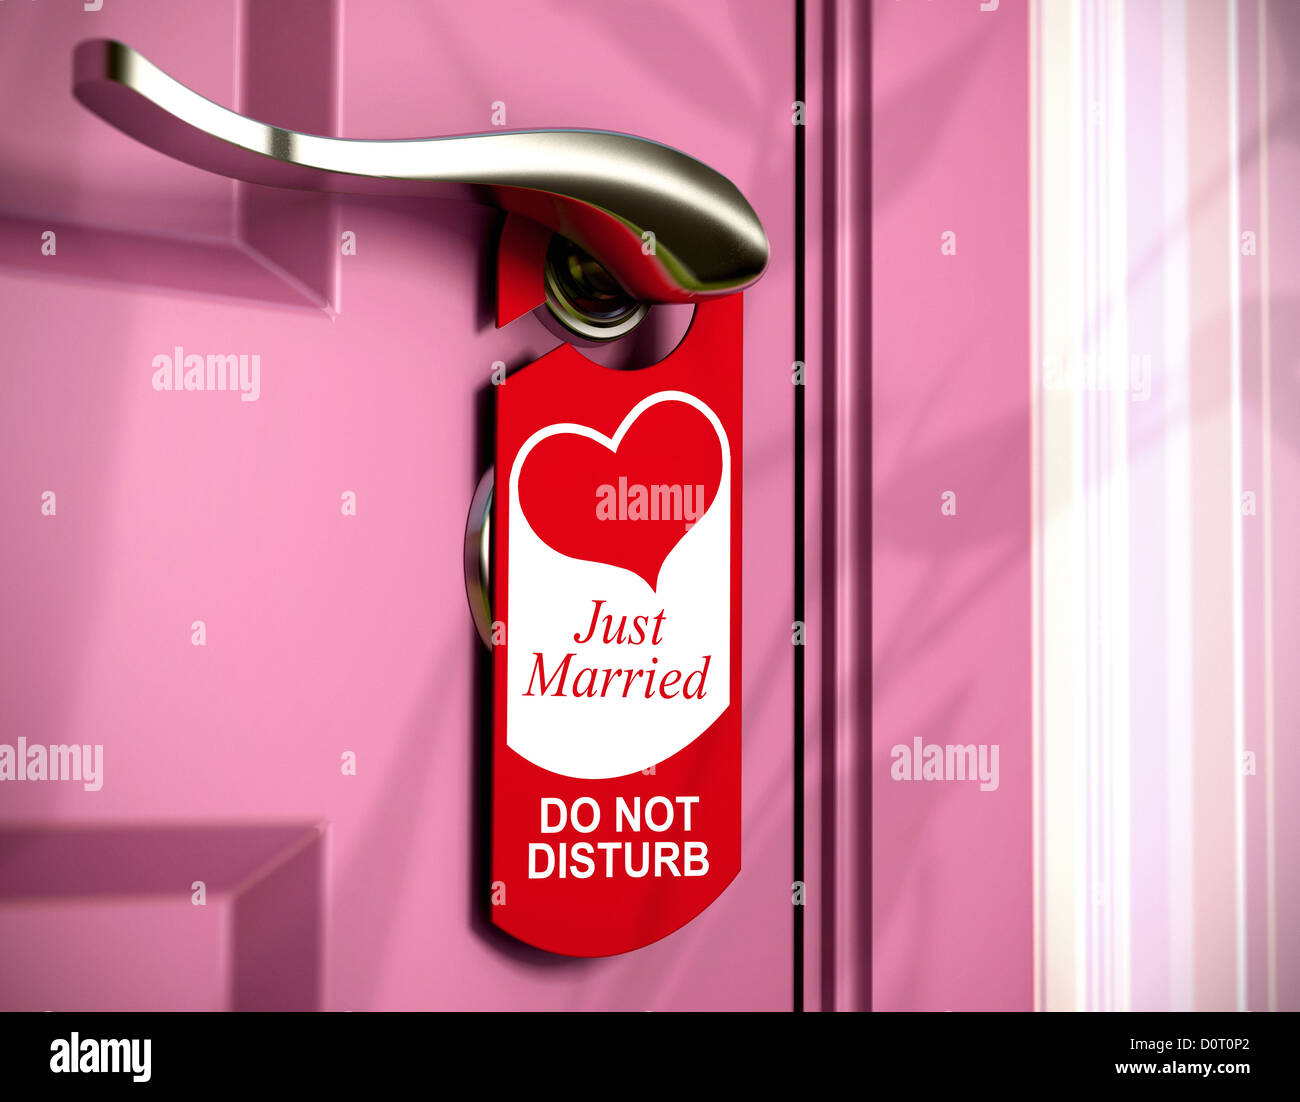 just married written onto a red door hanger, hanged on a metal handle of a pink bedroom door, concept of honeymoon. Stock Photo